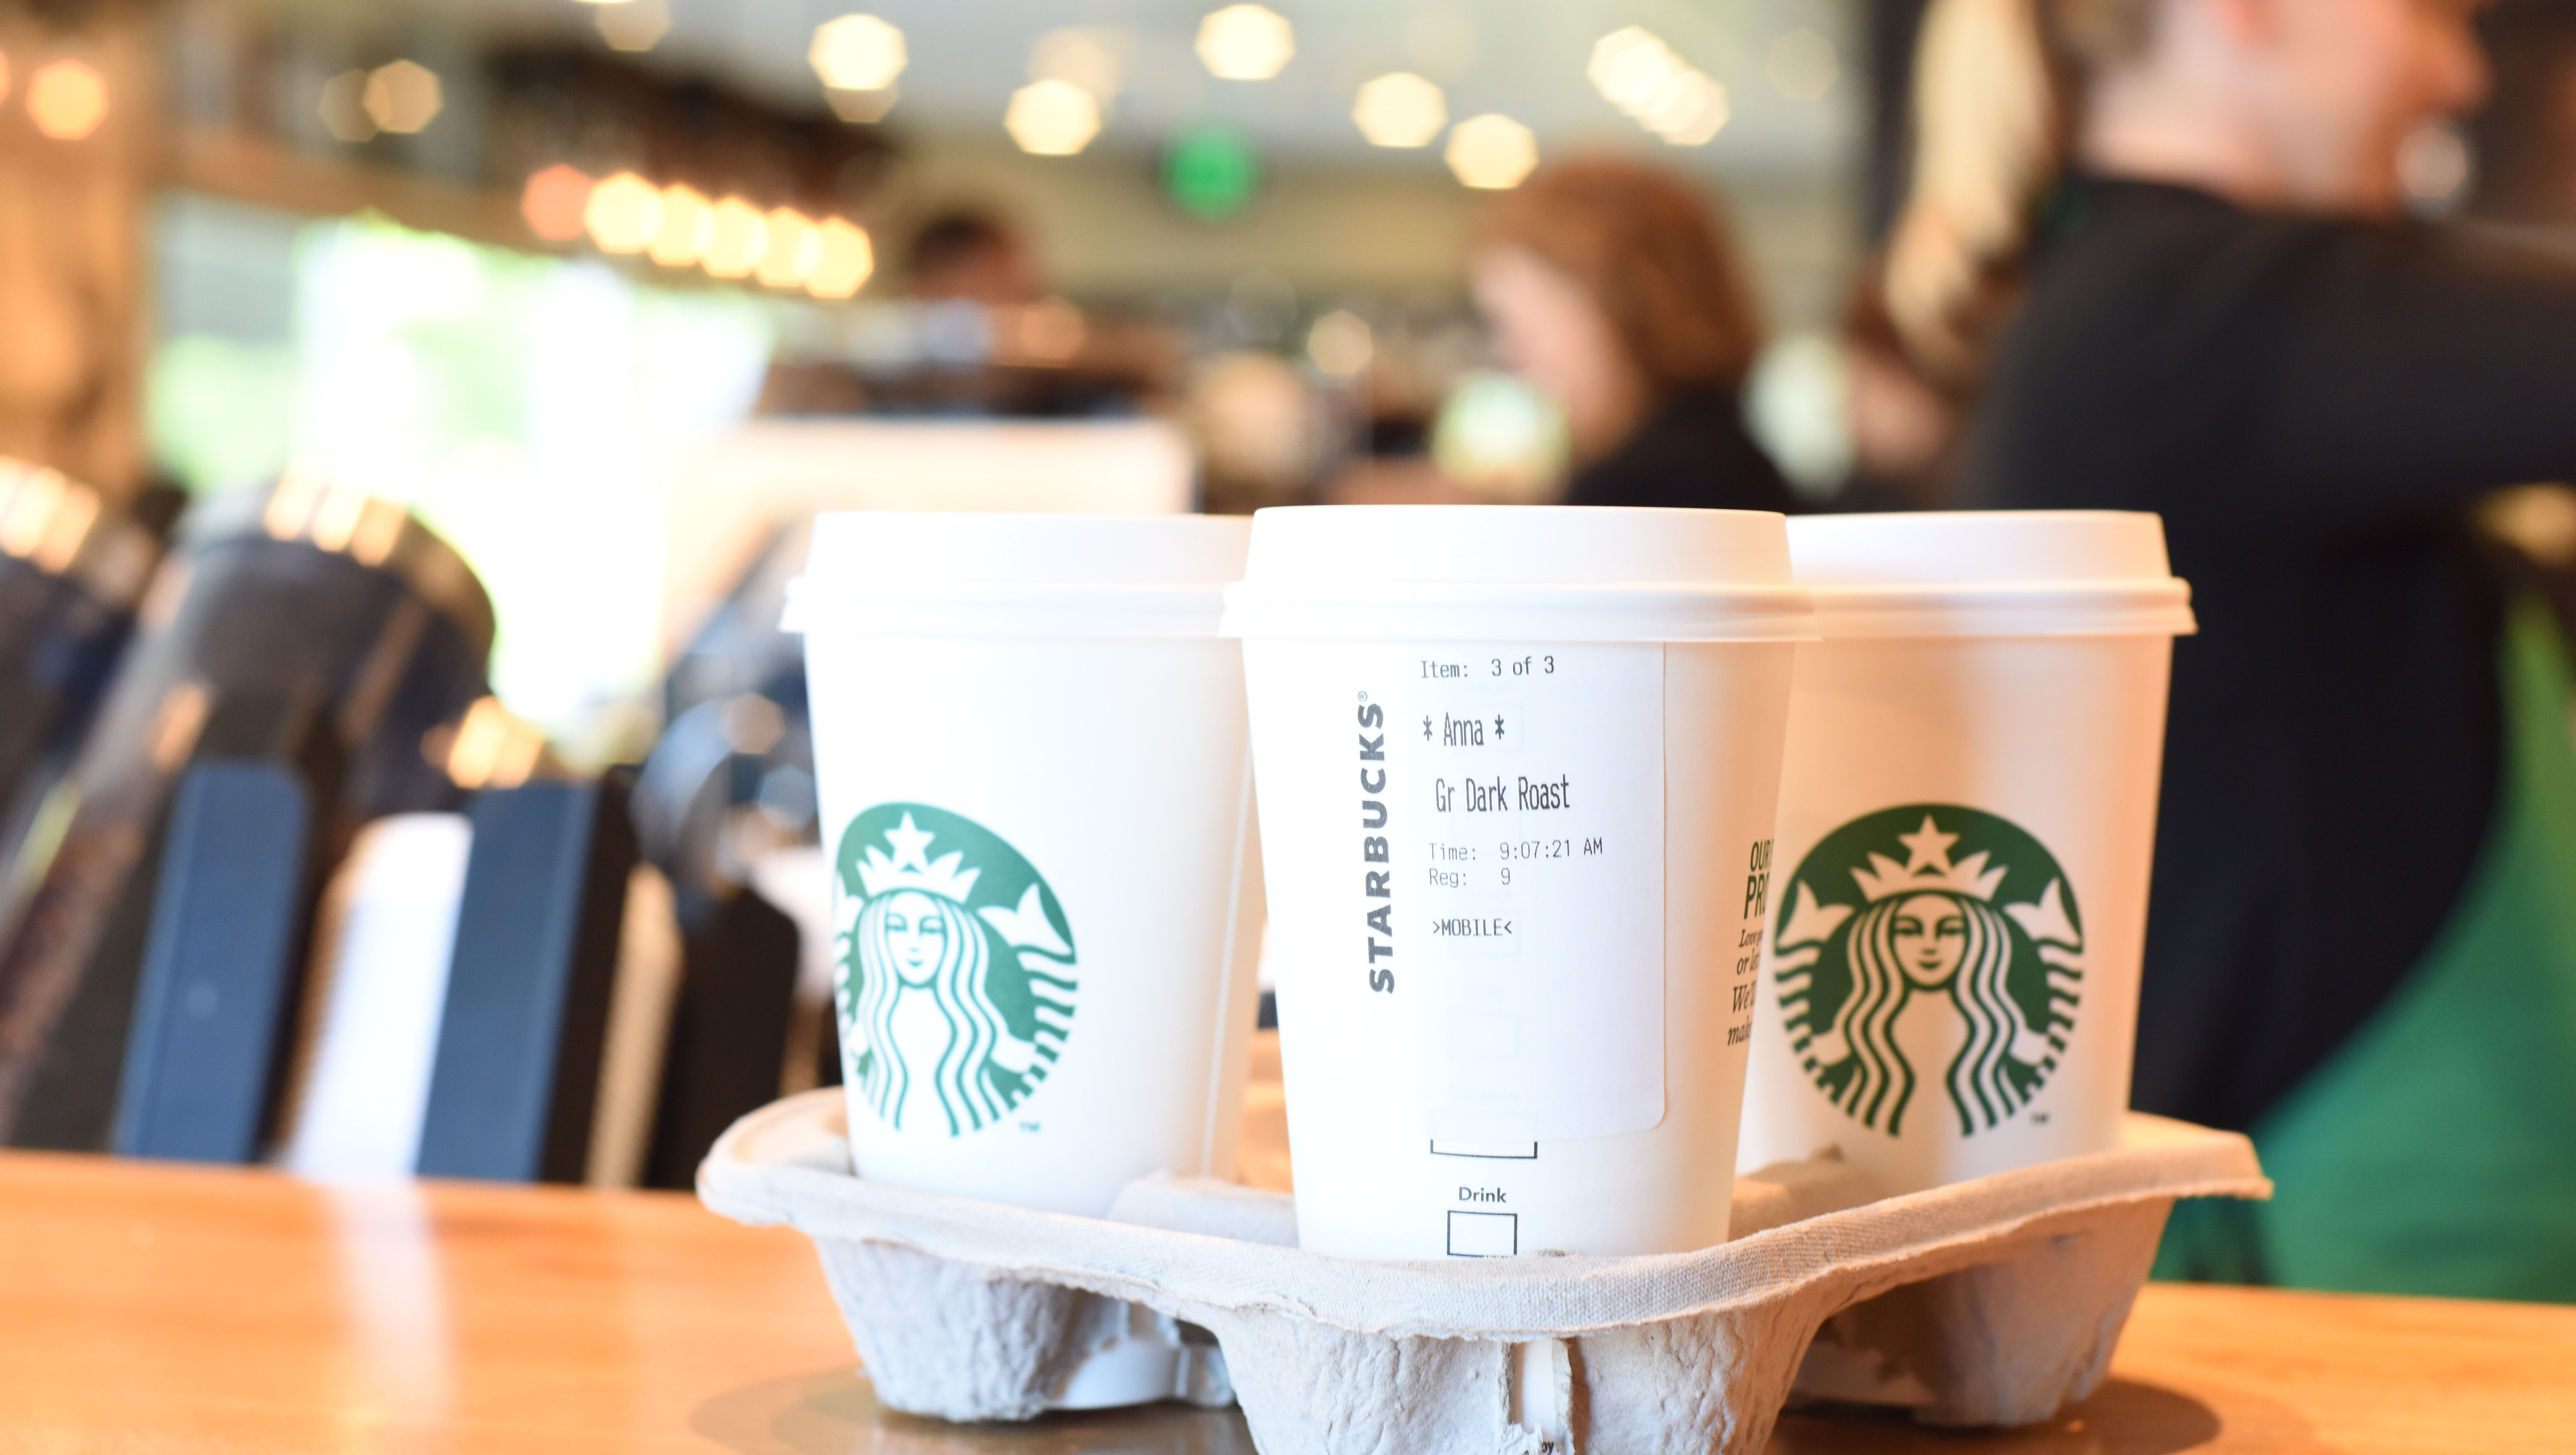 resuming internationalization at starbucks Resuming internationalization at starbucks case solution, starbucks has seen tremendous growth over the past two decades in 2007, it had a global reach of more than 17,000 stores in 56 countries.